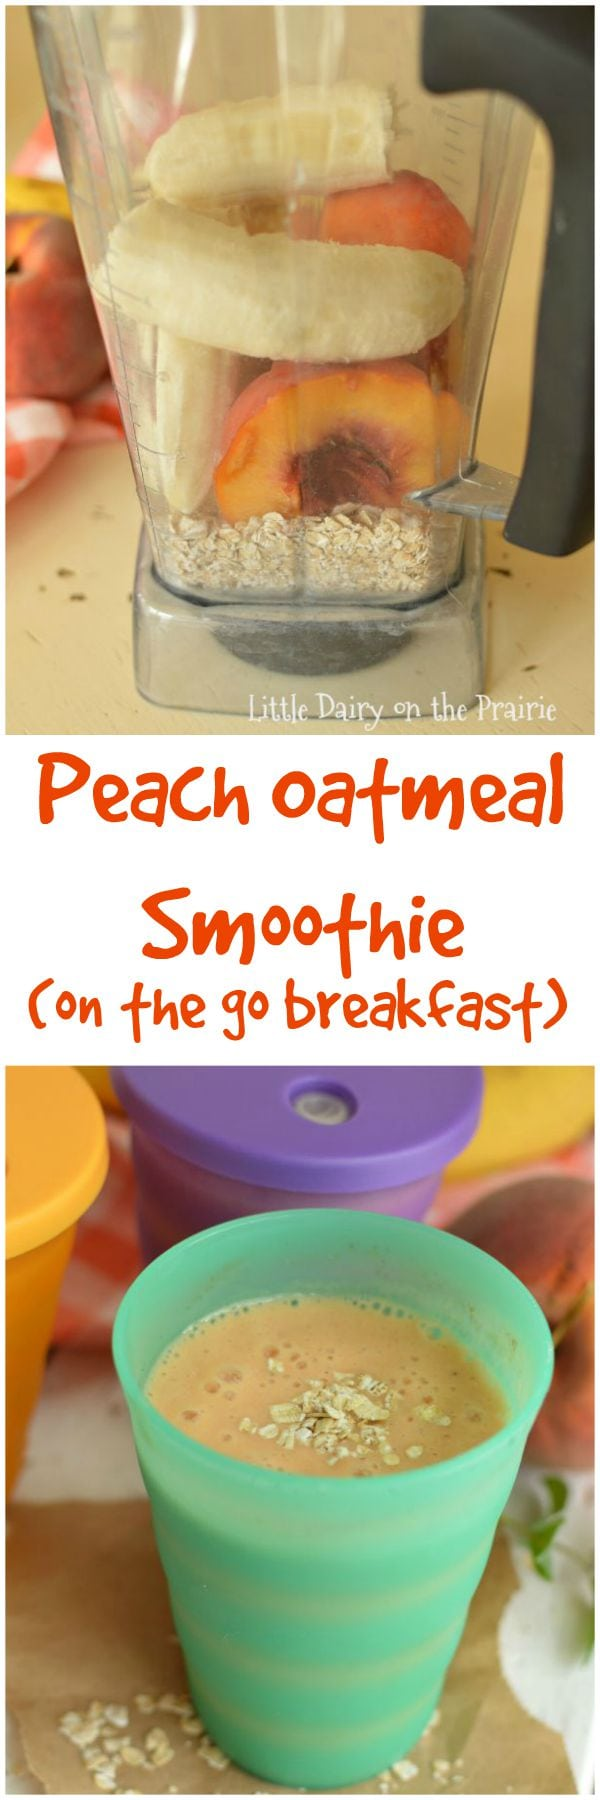 Peach Oatmeal Smoothies are a healthy on the go breakfast that will stick with you until lunch time! Little Dairy on the Prairie